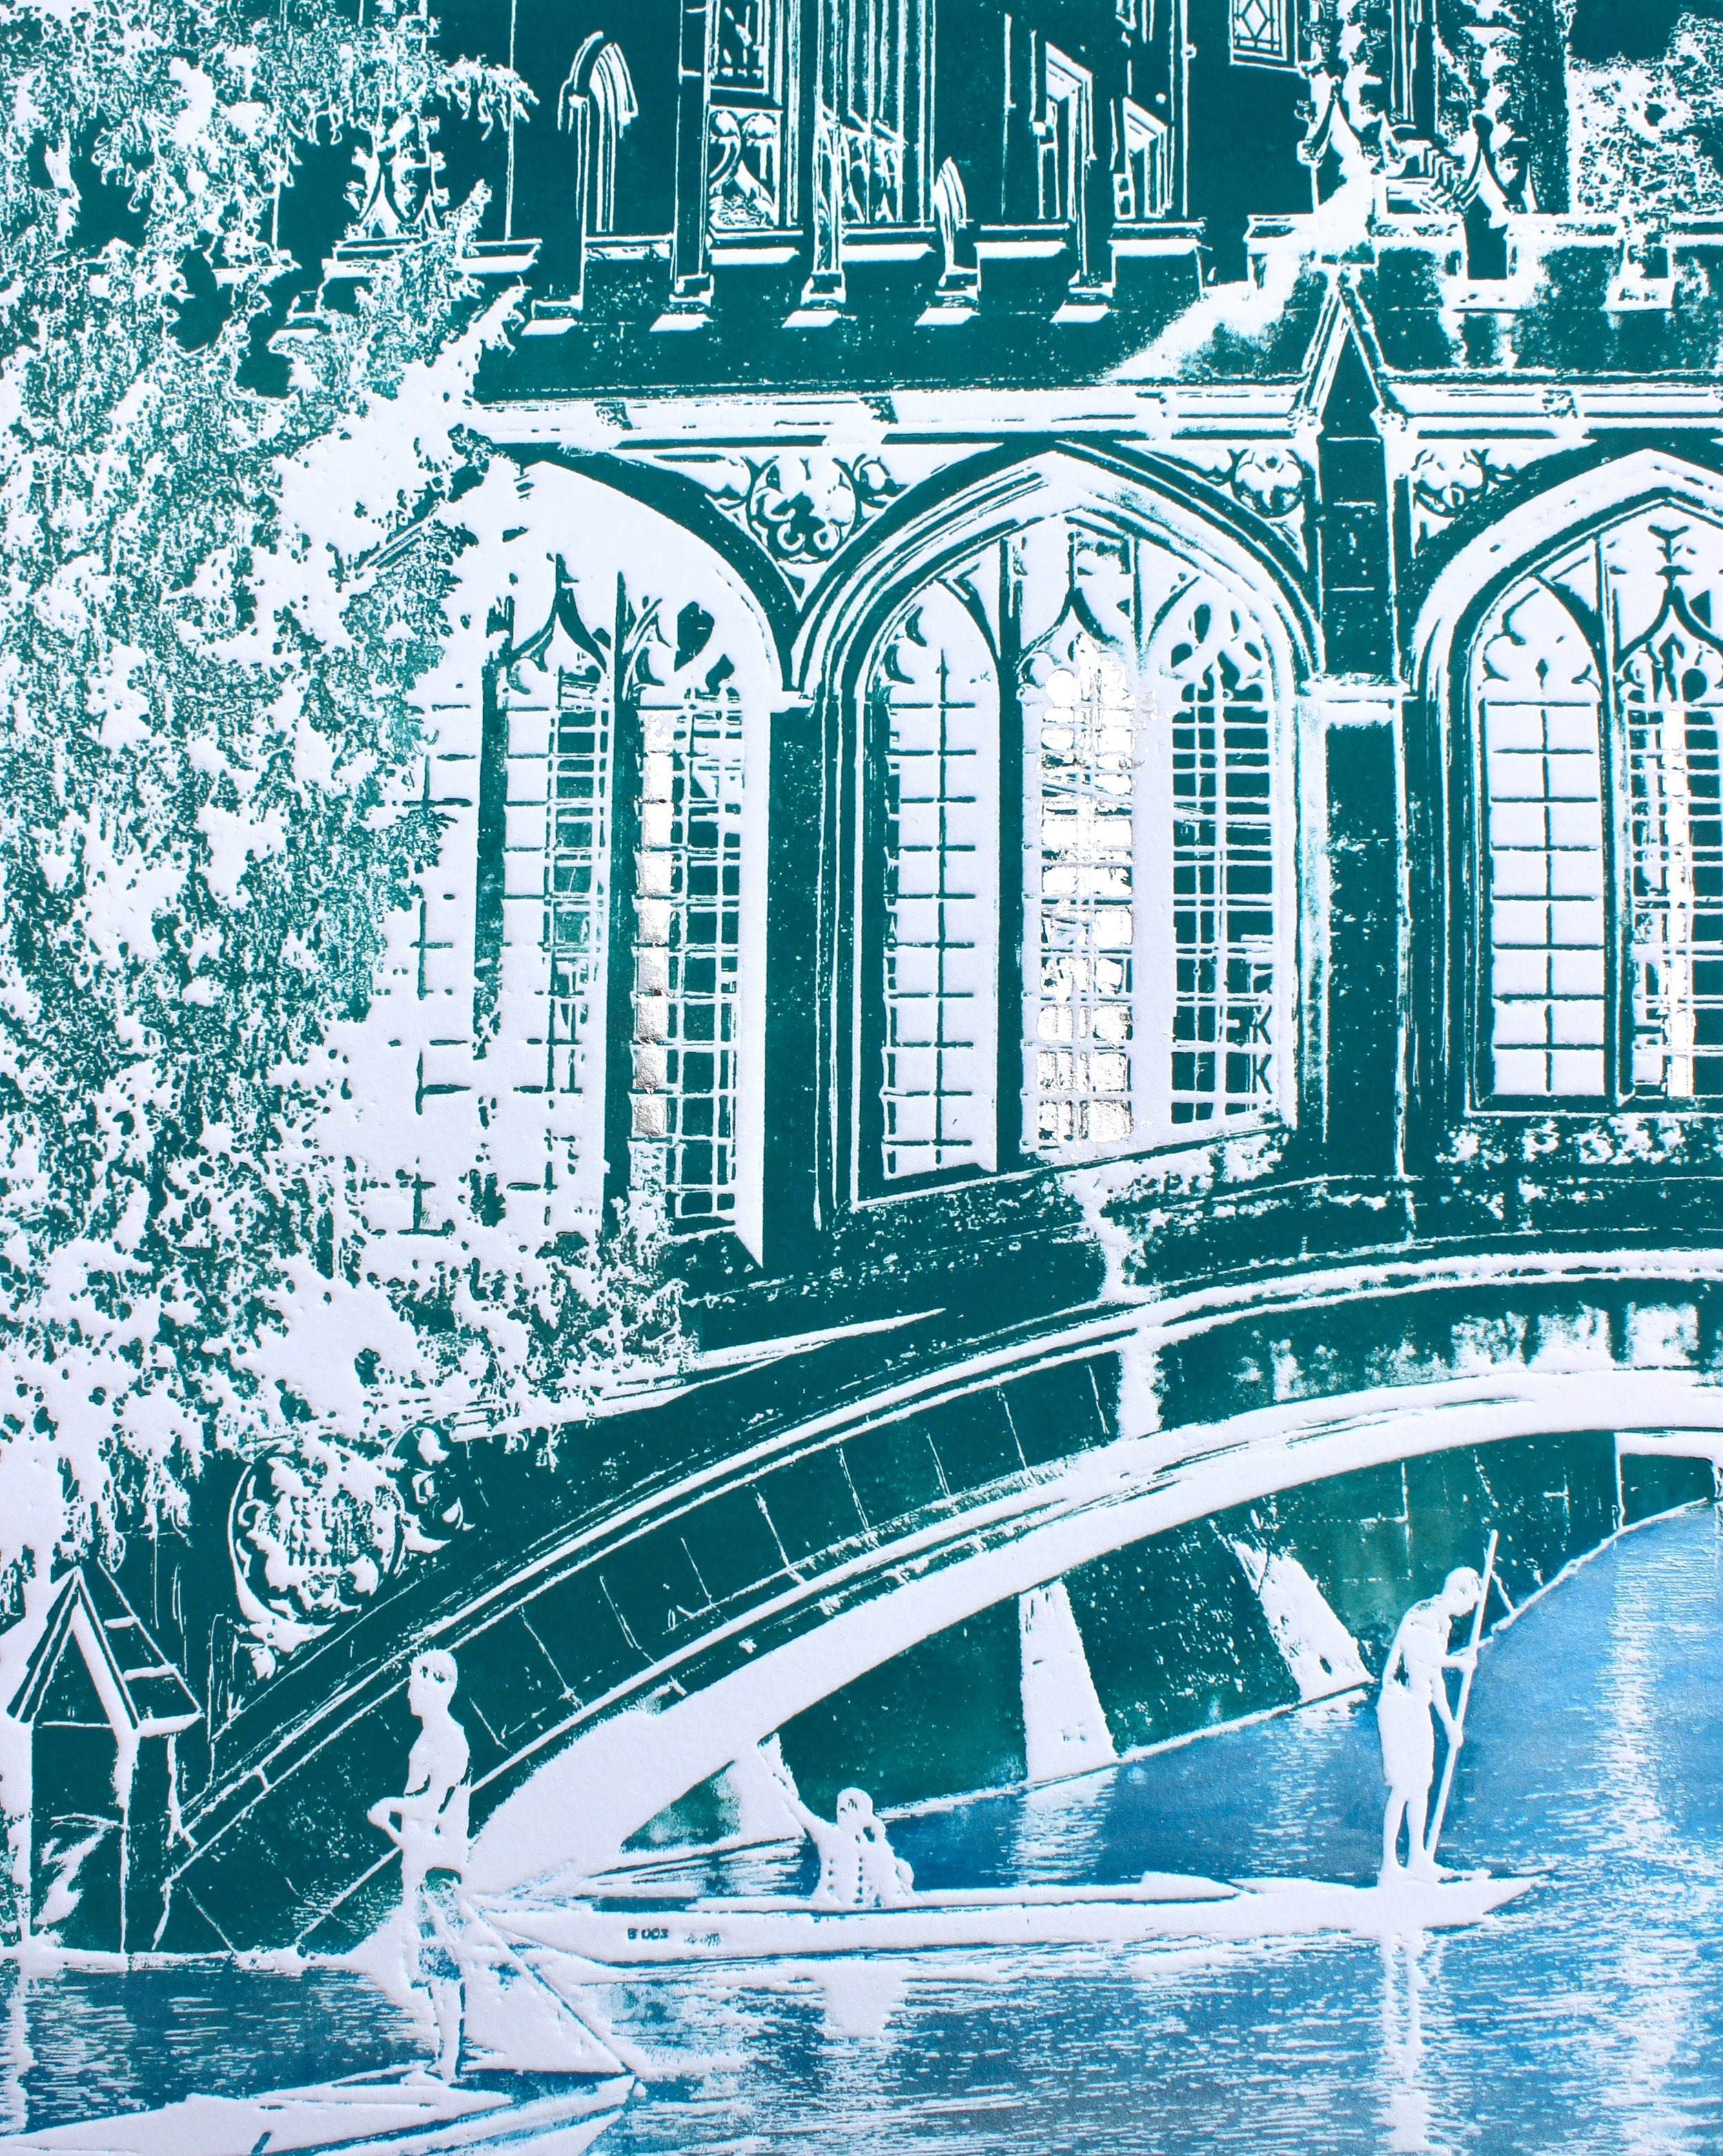 Sighs of Cambridge ed19   solar plate etching   57 x 67 cm  sold